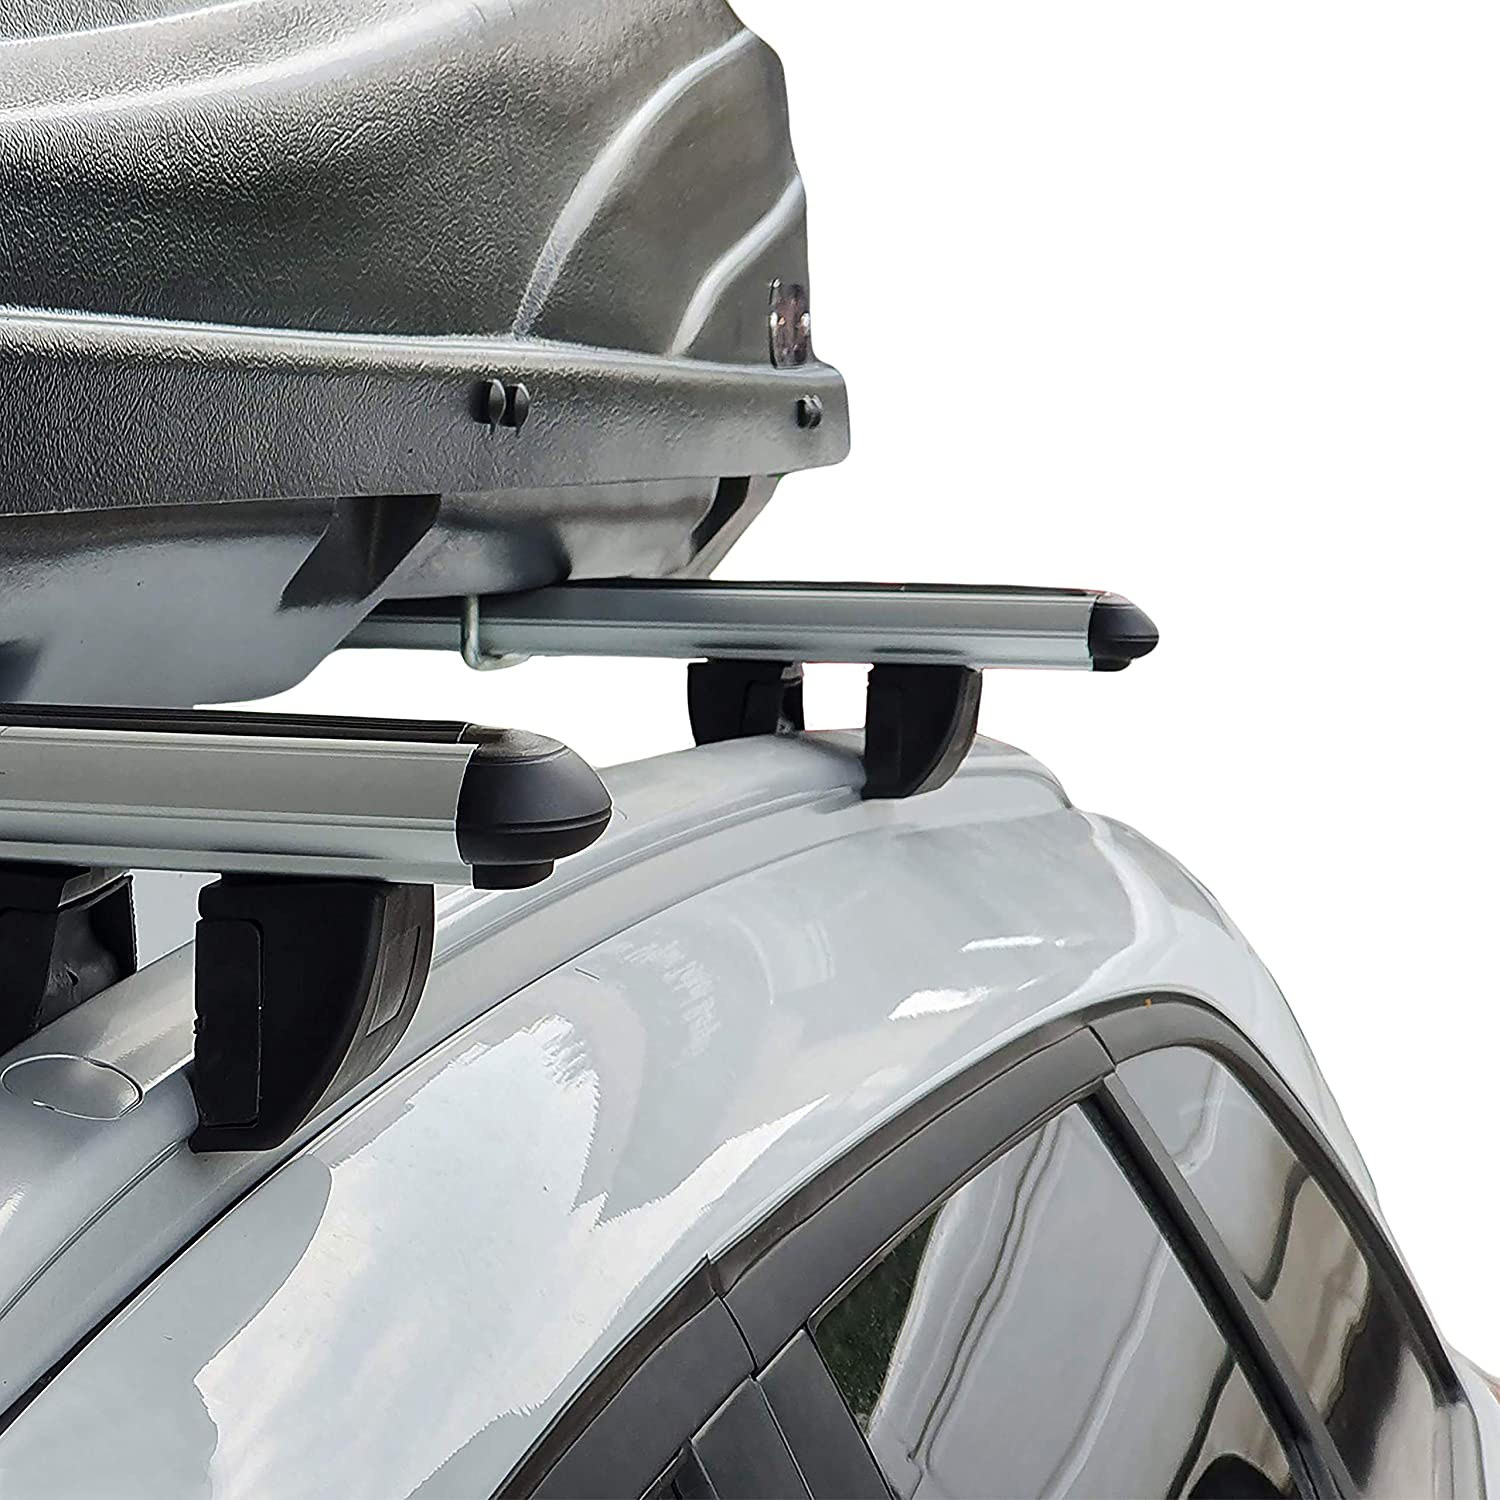 accessorypart Cross Bar for Peugeot 2017-2021 Max 79% OFF Traveller Max 69% OFF Expert R